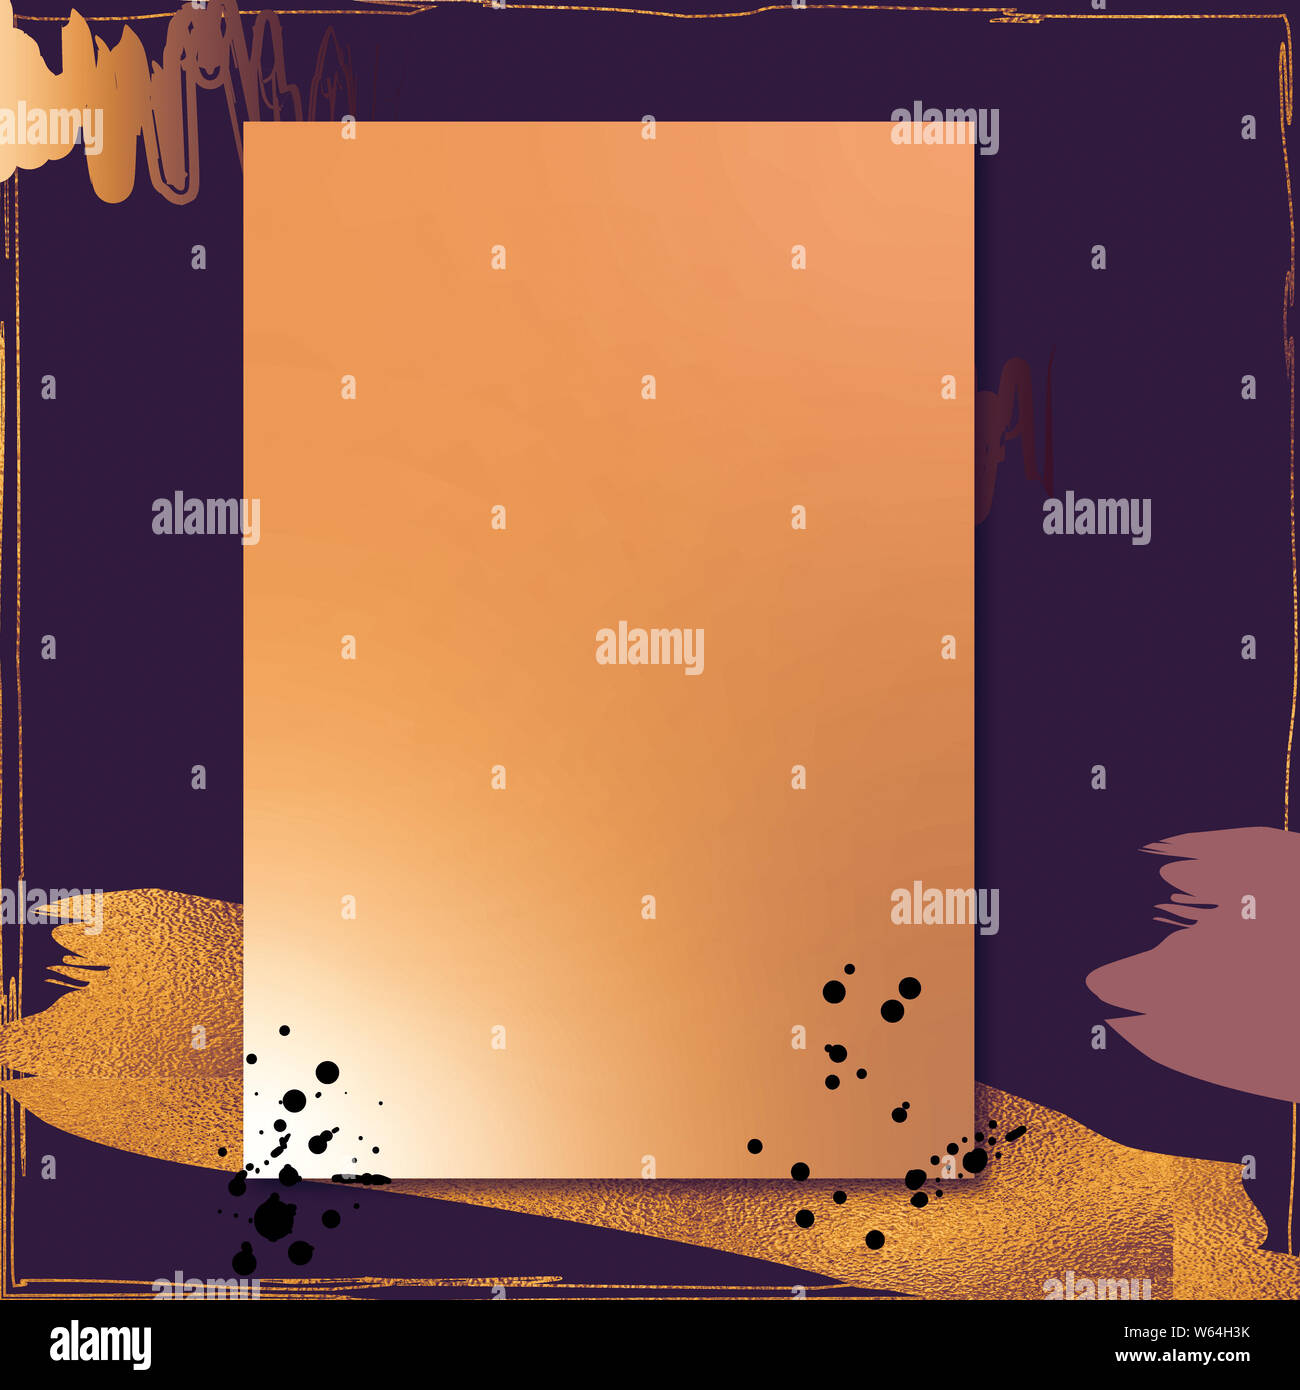 https www alamy com luxury golden frame wedding ornament templates wedding invitation background abstract style vintage card good for greetings wishes cards craft image261944695 html